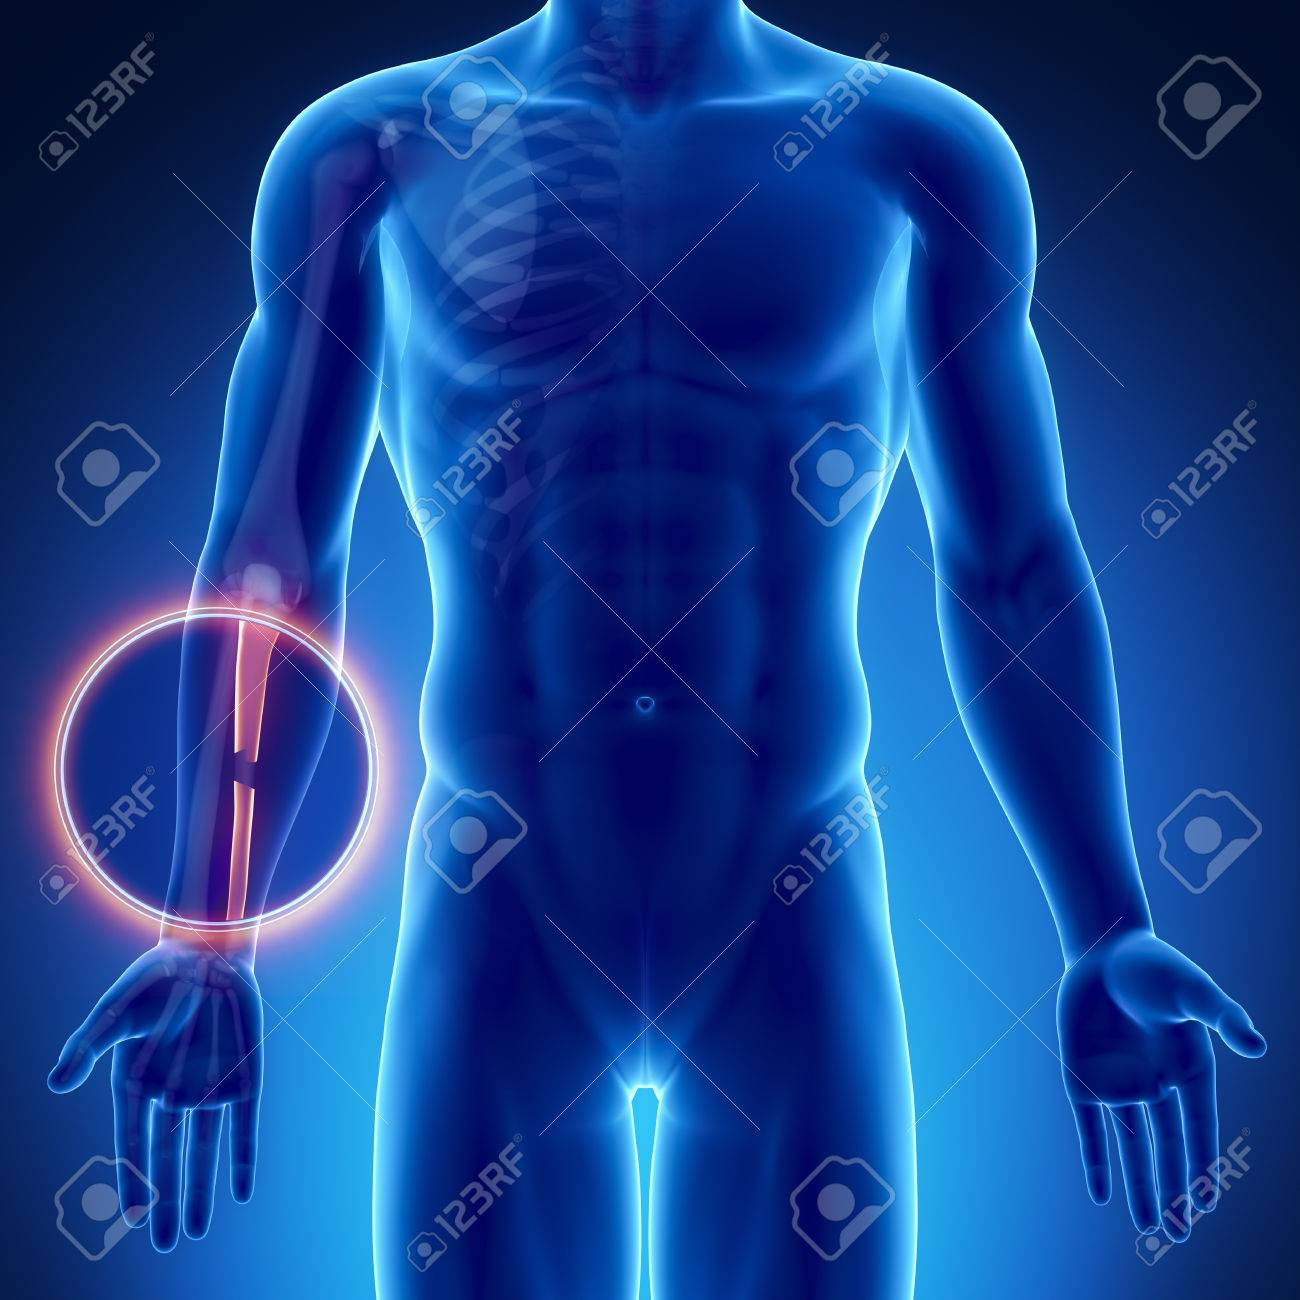 Male Bone Anatomy Ulna Stock Photo, Picture And Royalty Free Image ...